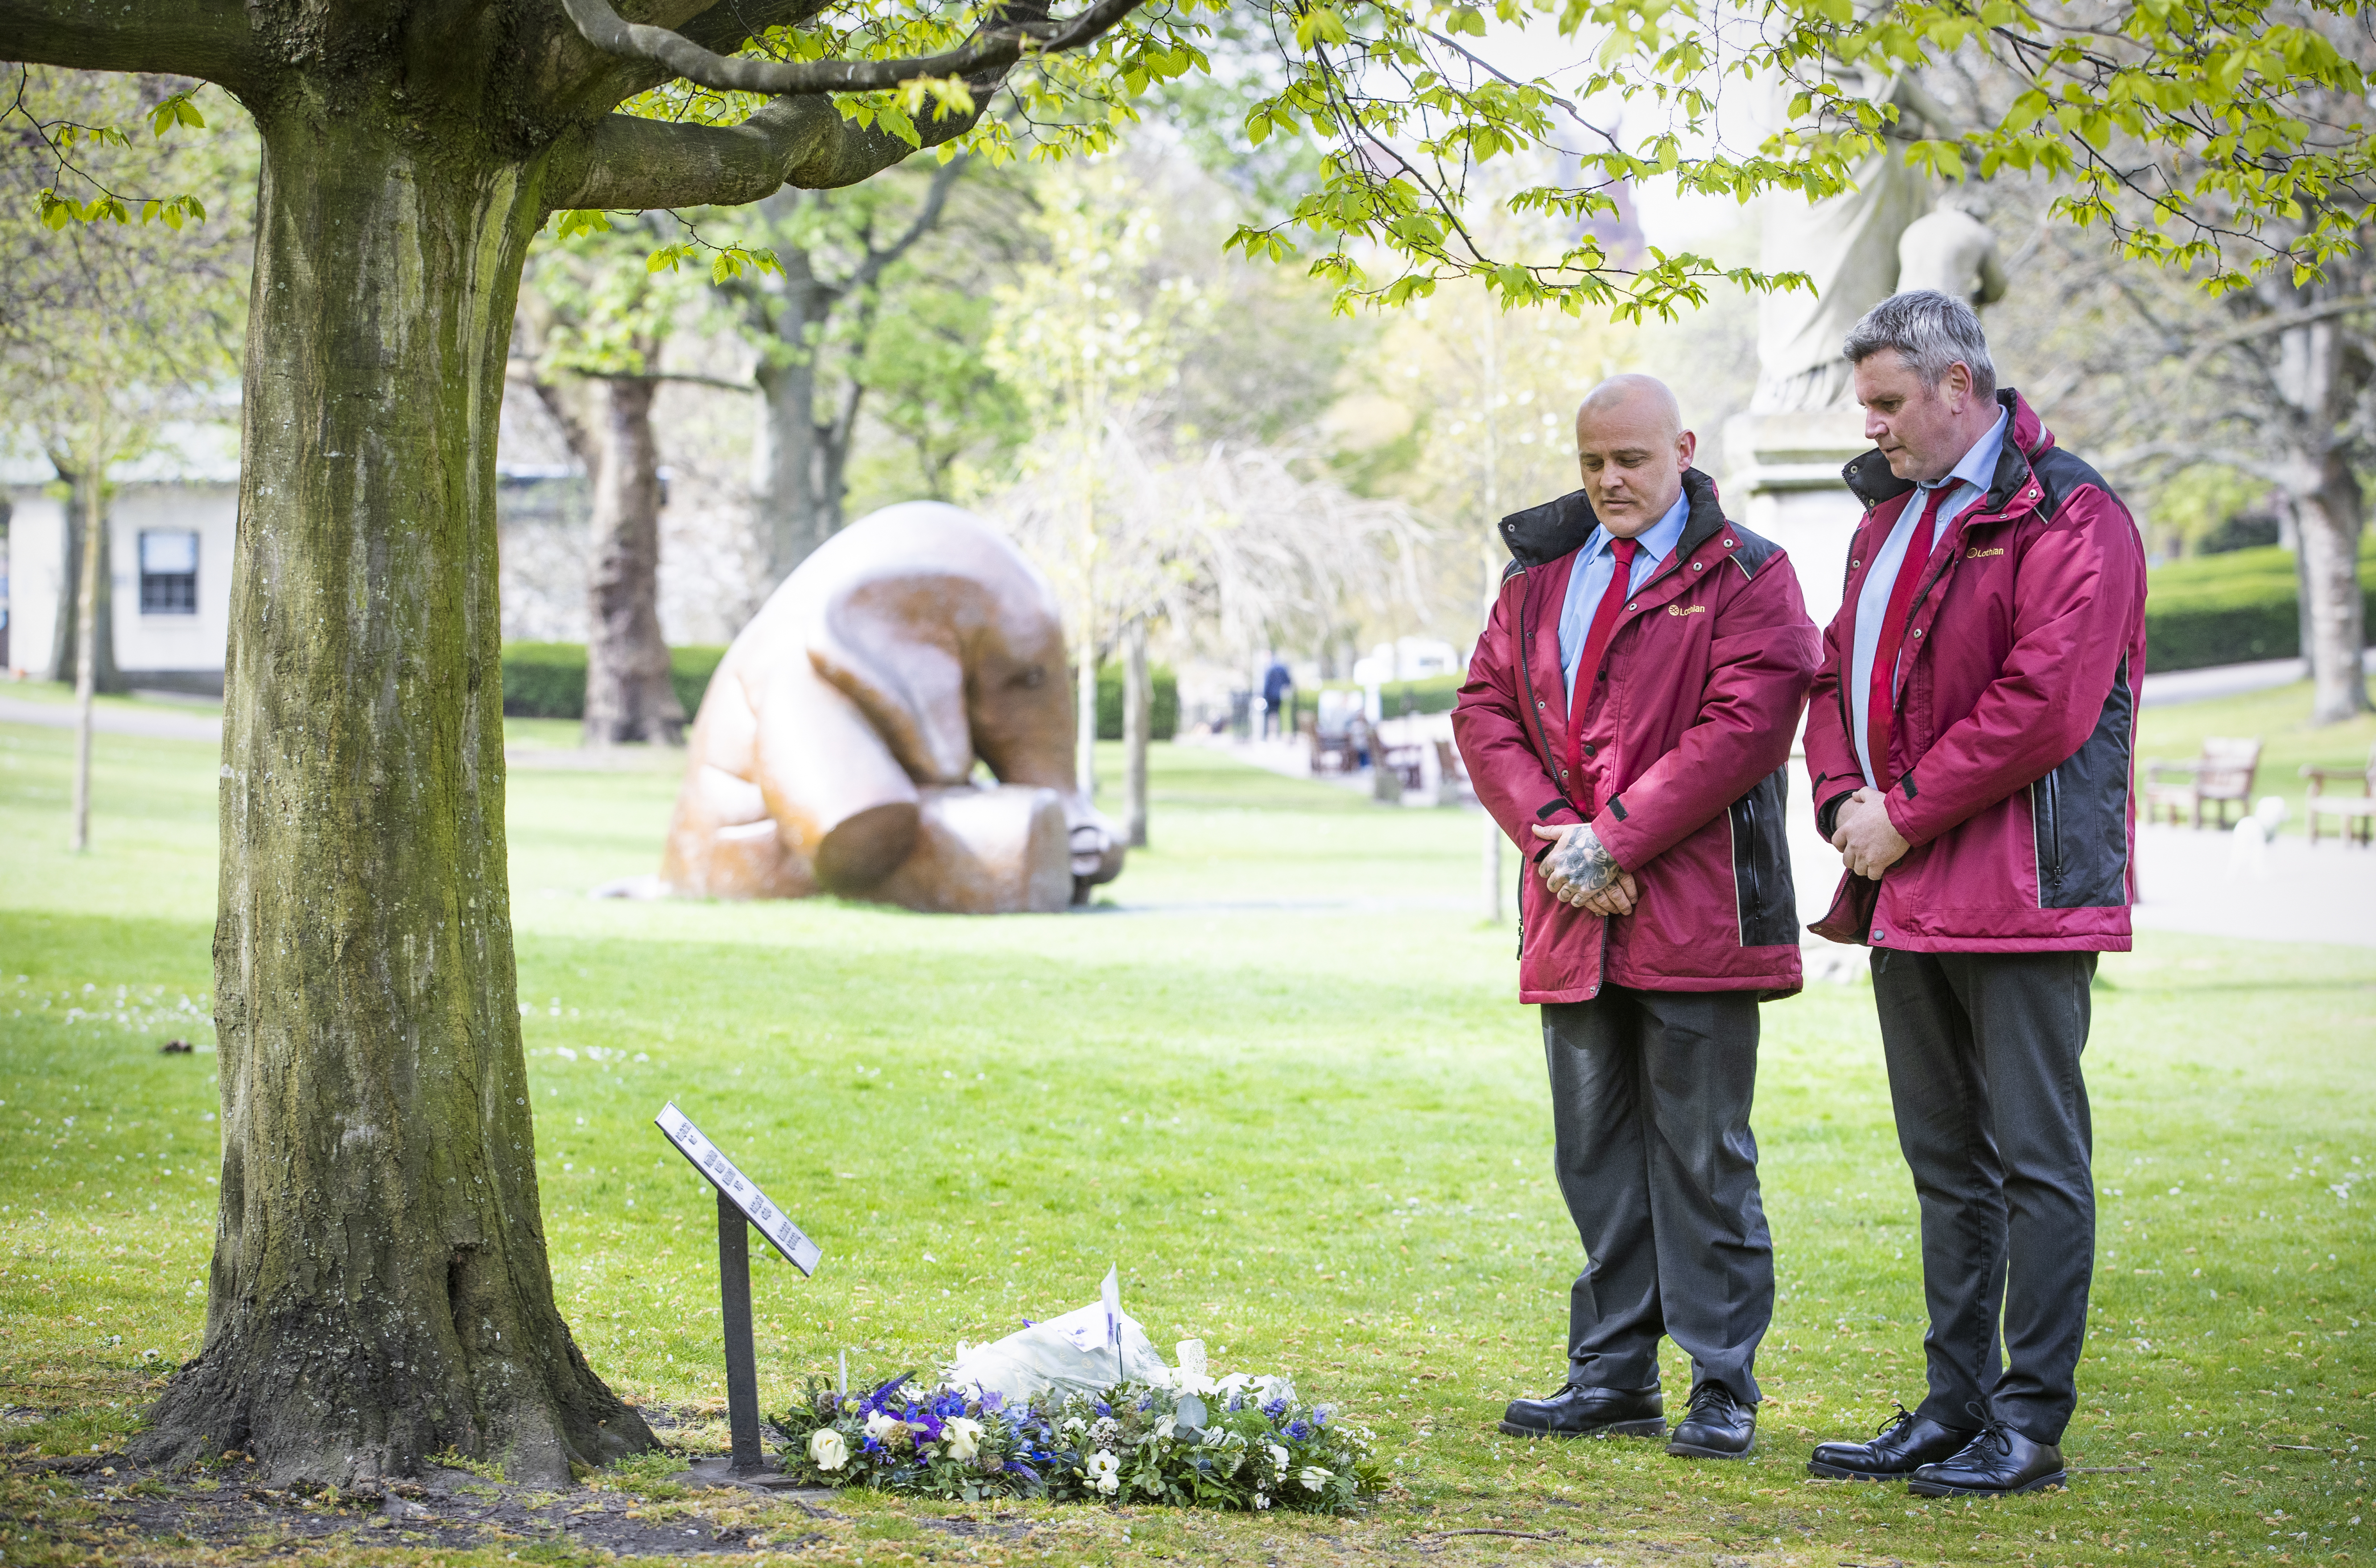 <p>George Brown (right) and Marvin Greenham, from Lothian Buses, reflect after laying a wreath at the workers memorial tree in West Princes Street Gardens, Edinburgh, to commemorate workers who died from Covid-19 and other illnesses or injuries as part of STUC International Workers Memorial Day. Picture date: Wednesday April 28, 2021.</p>